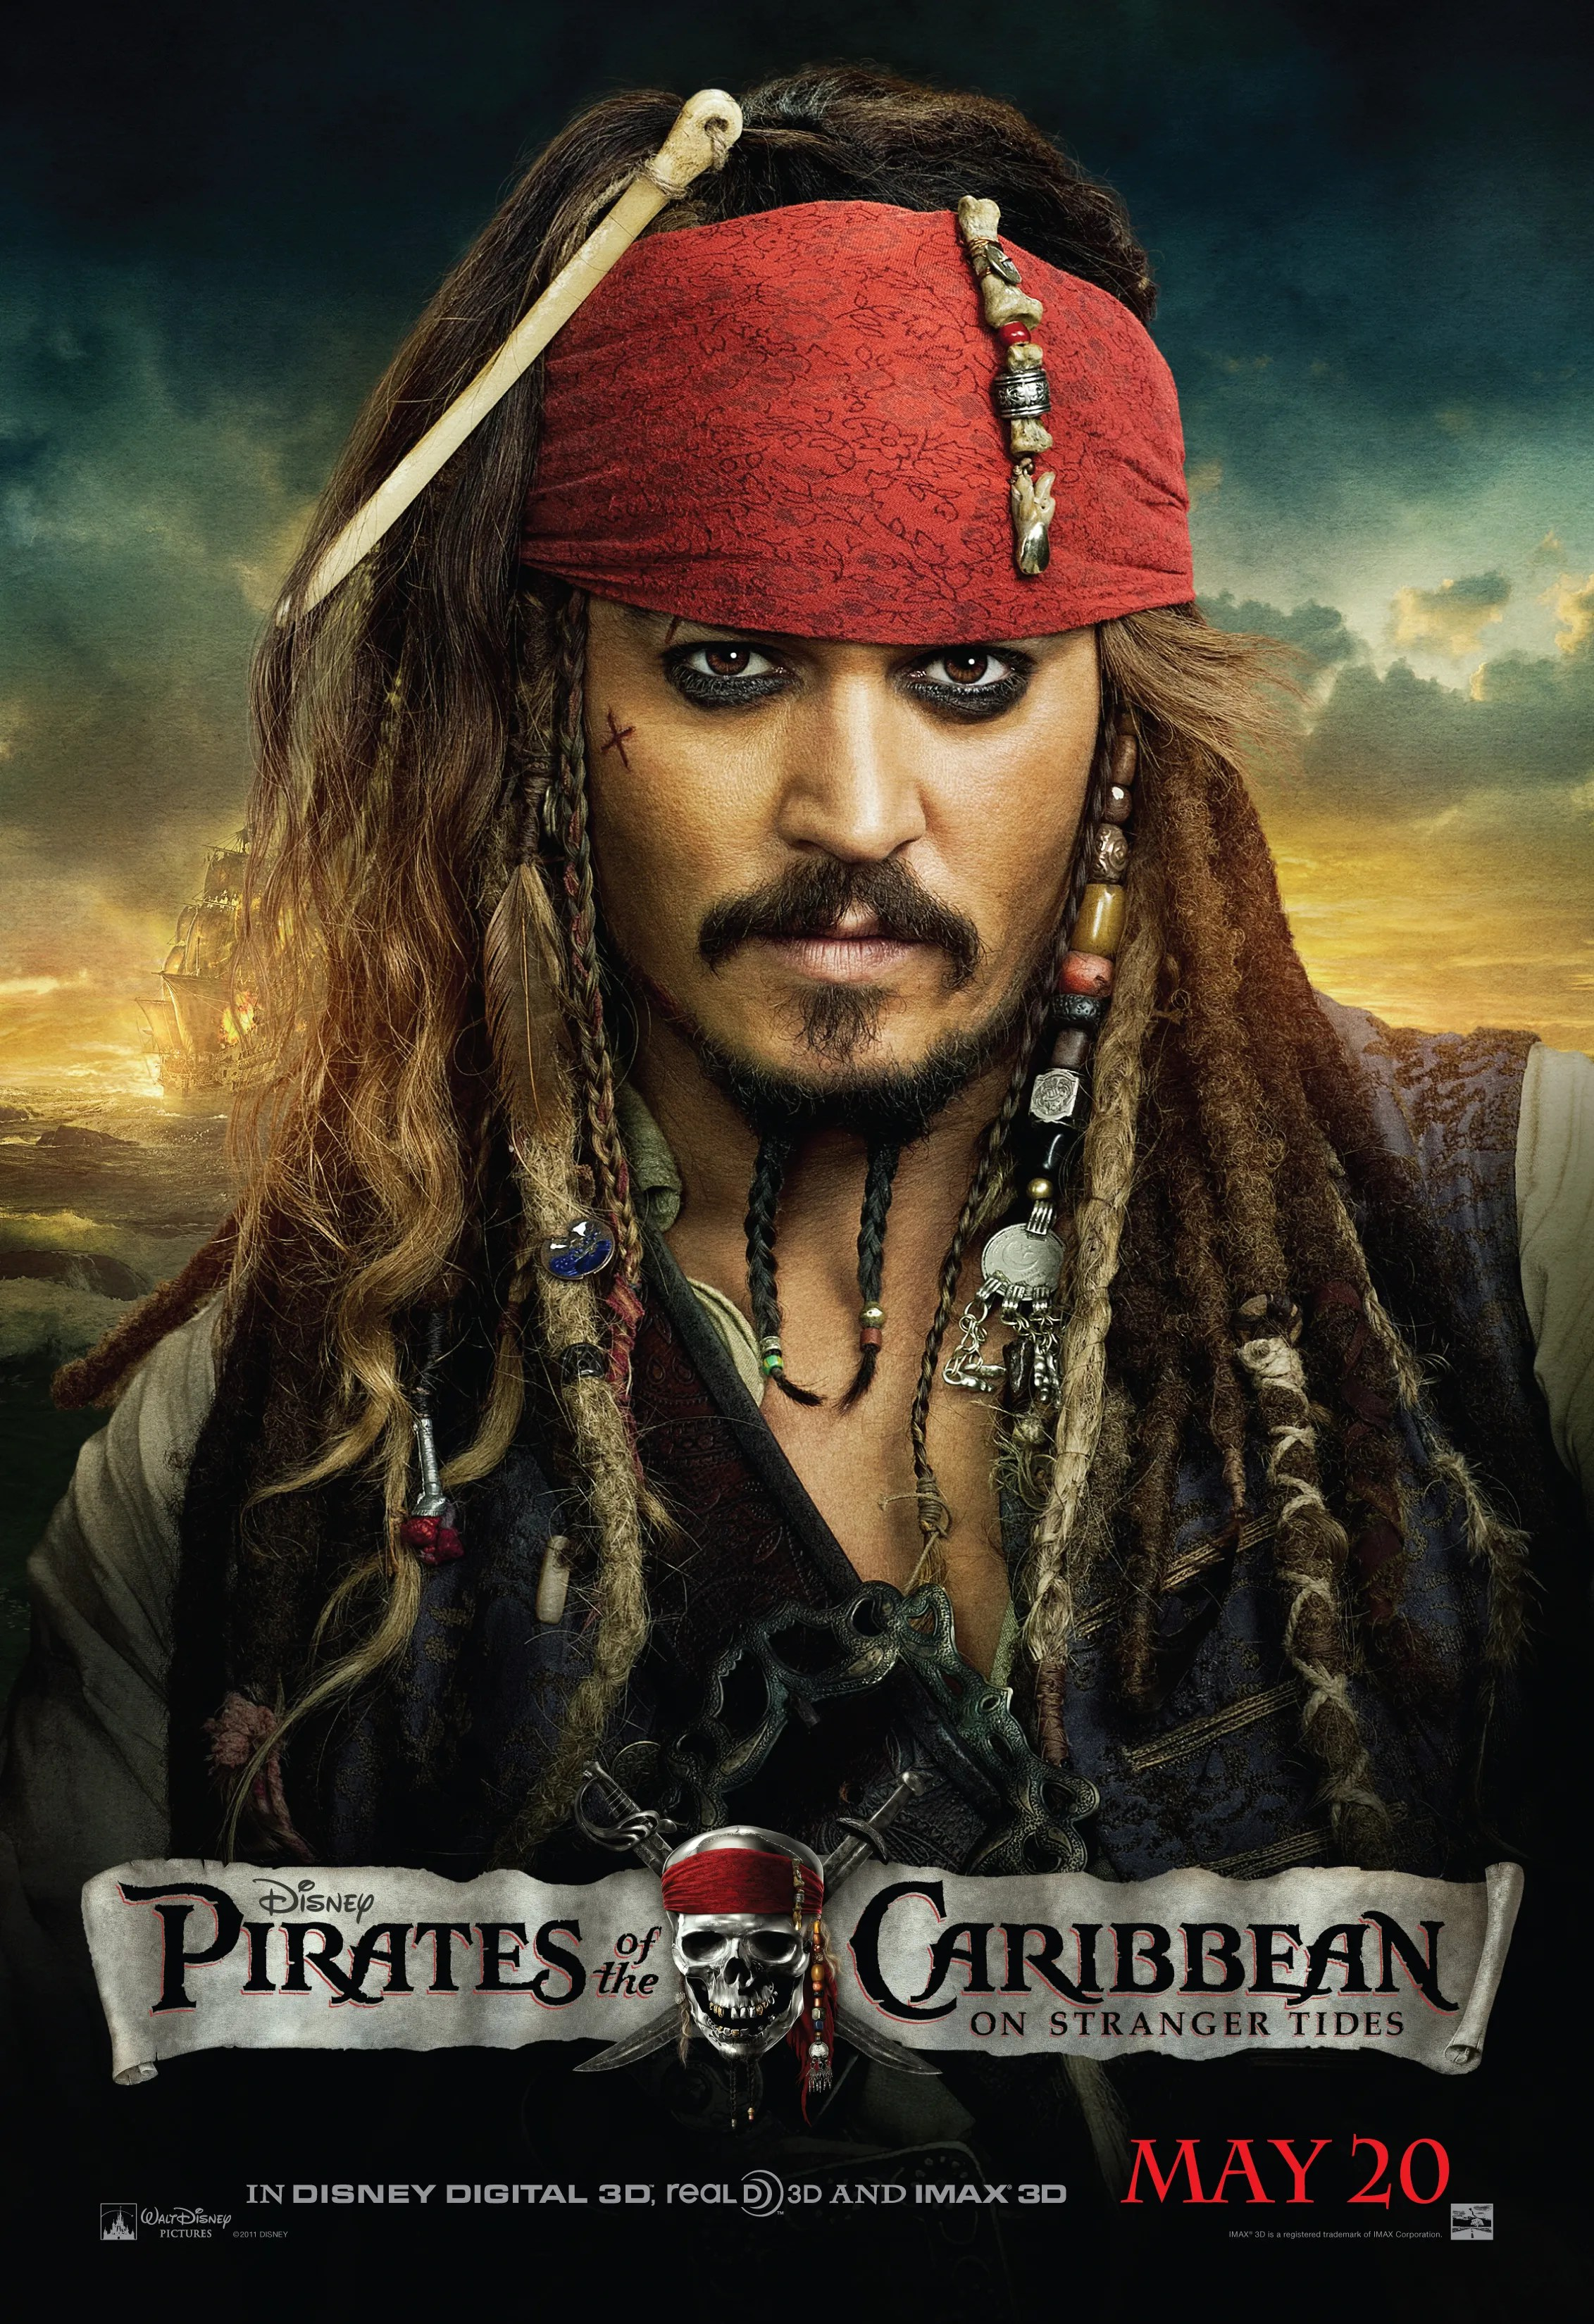 The Pirate Filme Pirates Of The Caribbean On Stranger Tides Movie Poster